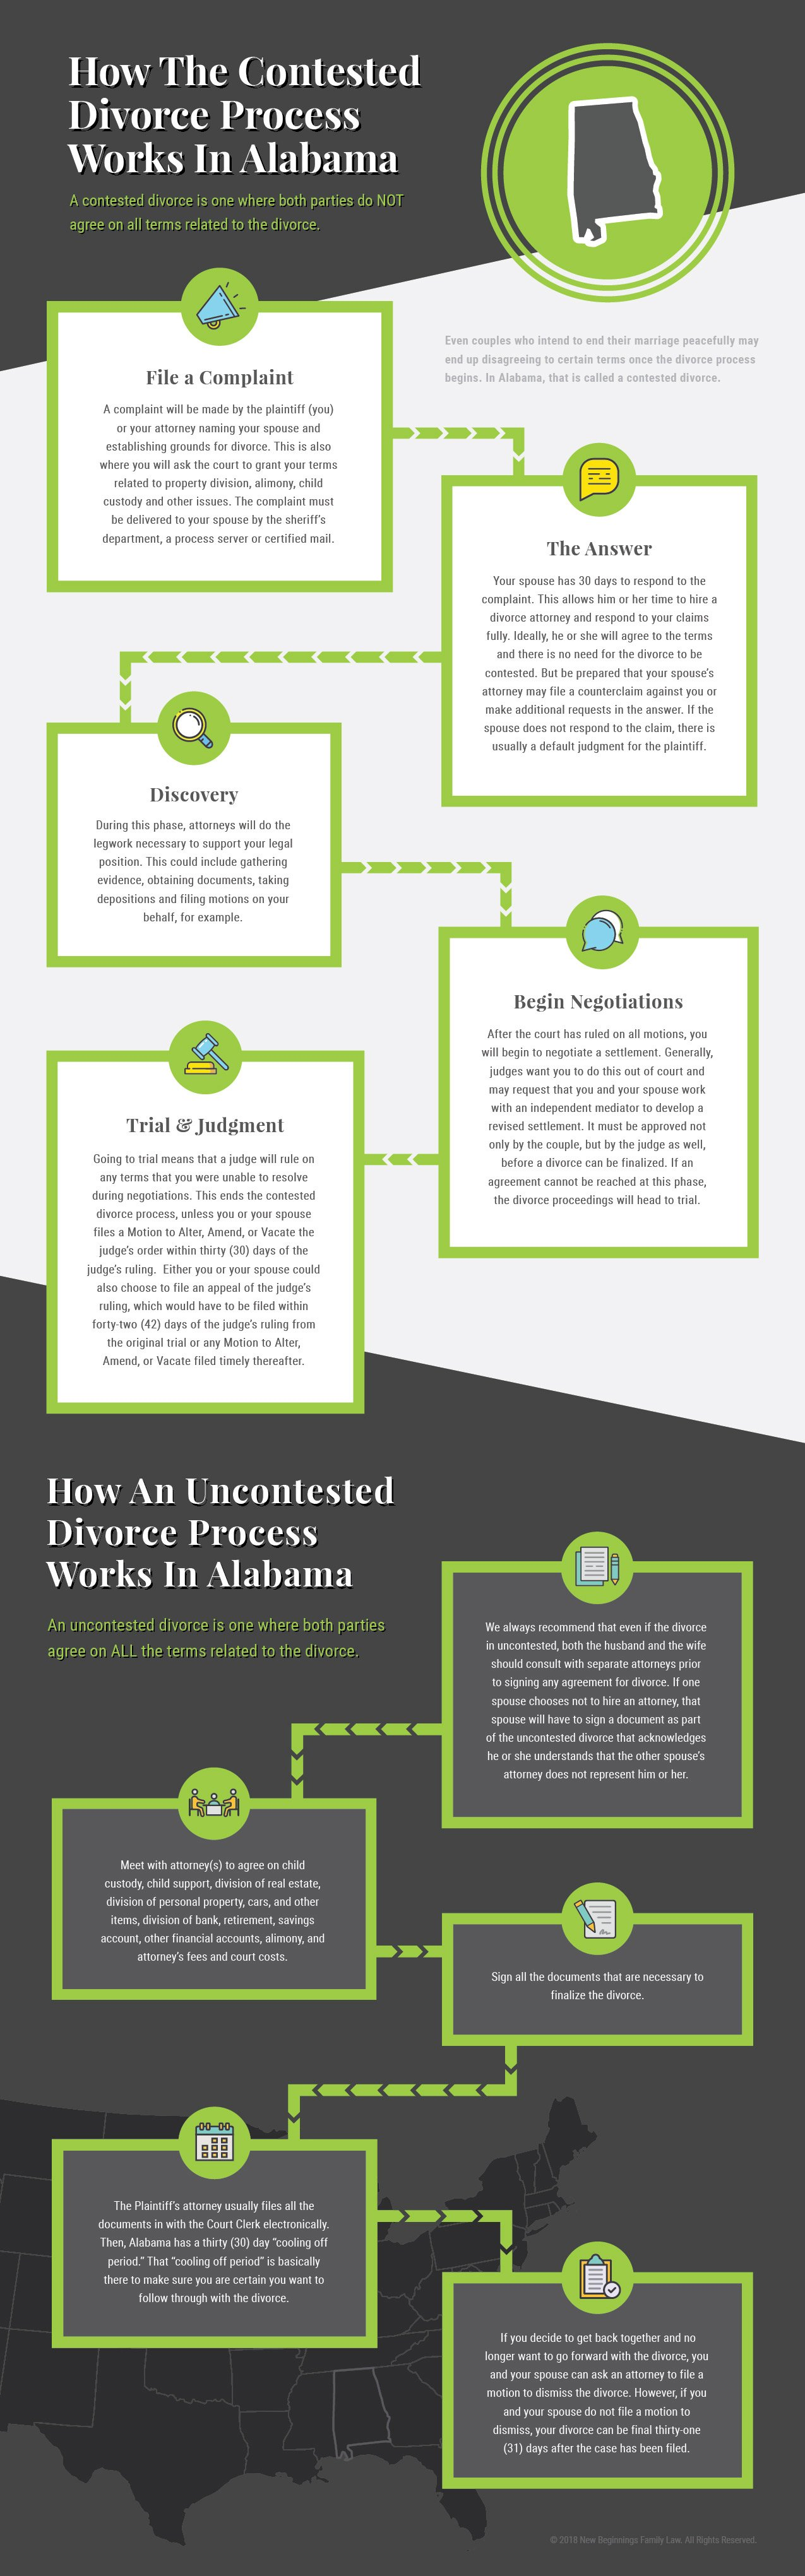 infographic-divorce-process